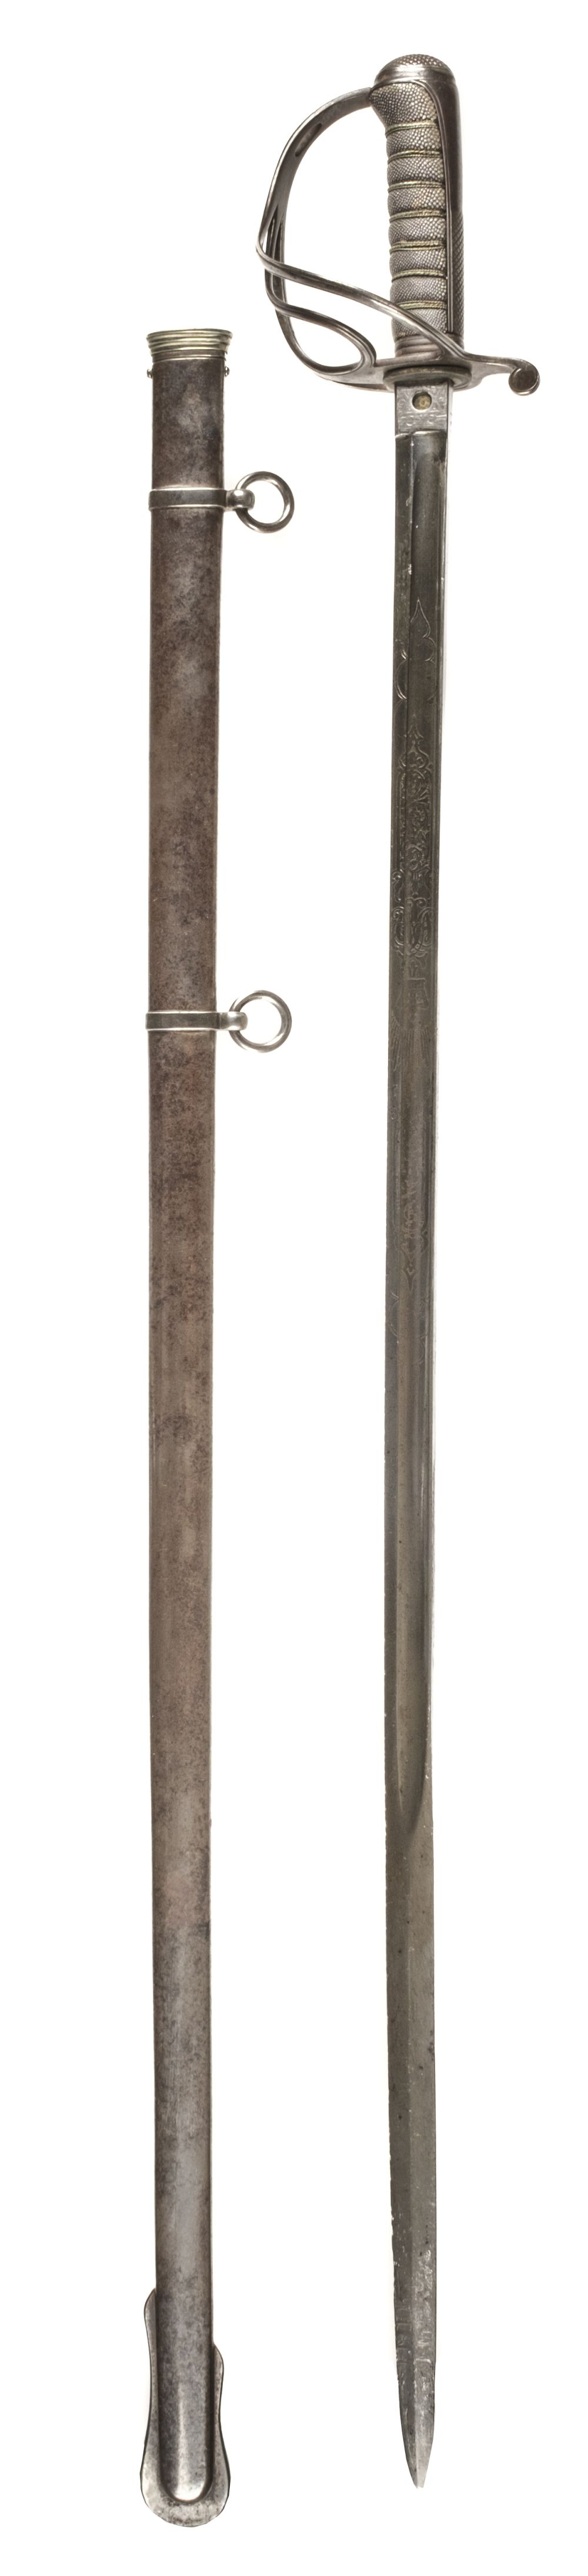 * Sword. Victorian officer's sword by Hawkes & Co